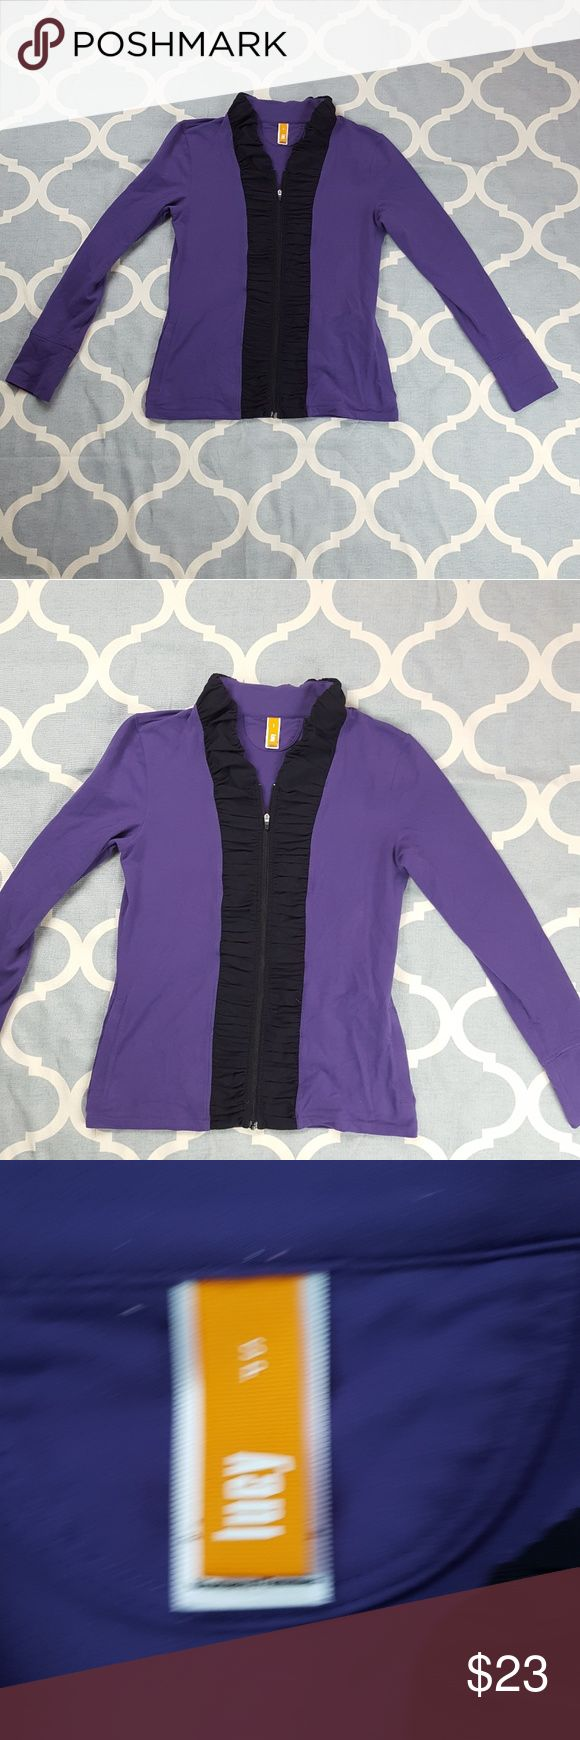 """Lucy Techwear Zip up Sweatshirt Purple Small Petit Brand: Lucy Techwear Style: ZIp up sweatshirt Color: Purple/ black Fabric: Nylon blend Size: Small Petite Condition: Used, good  Approximate measurements taken when garment was laid flat- not stretch: Overall length:  24"""" Chest:   17"""" Sleeve length from shoulder hem: 23  """"  E145 &e Lucy Tops Sweatshirts & Hoodies"""